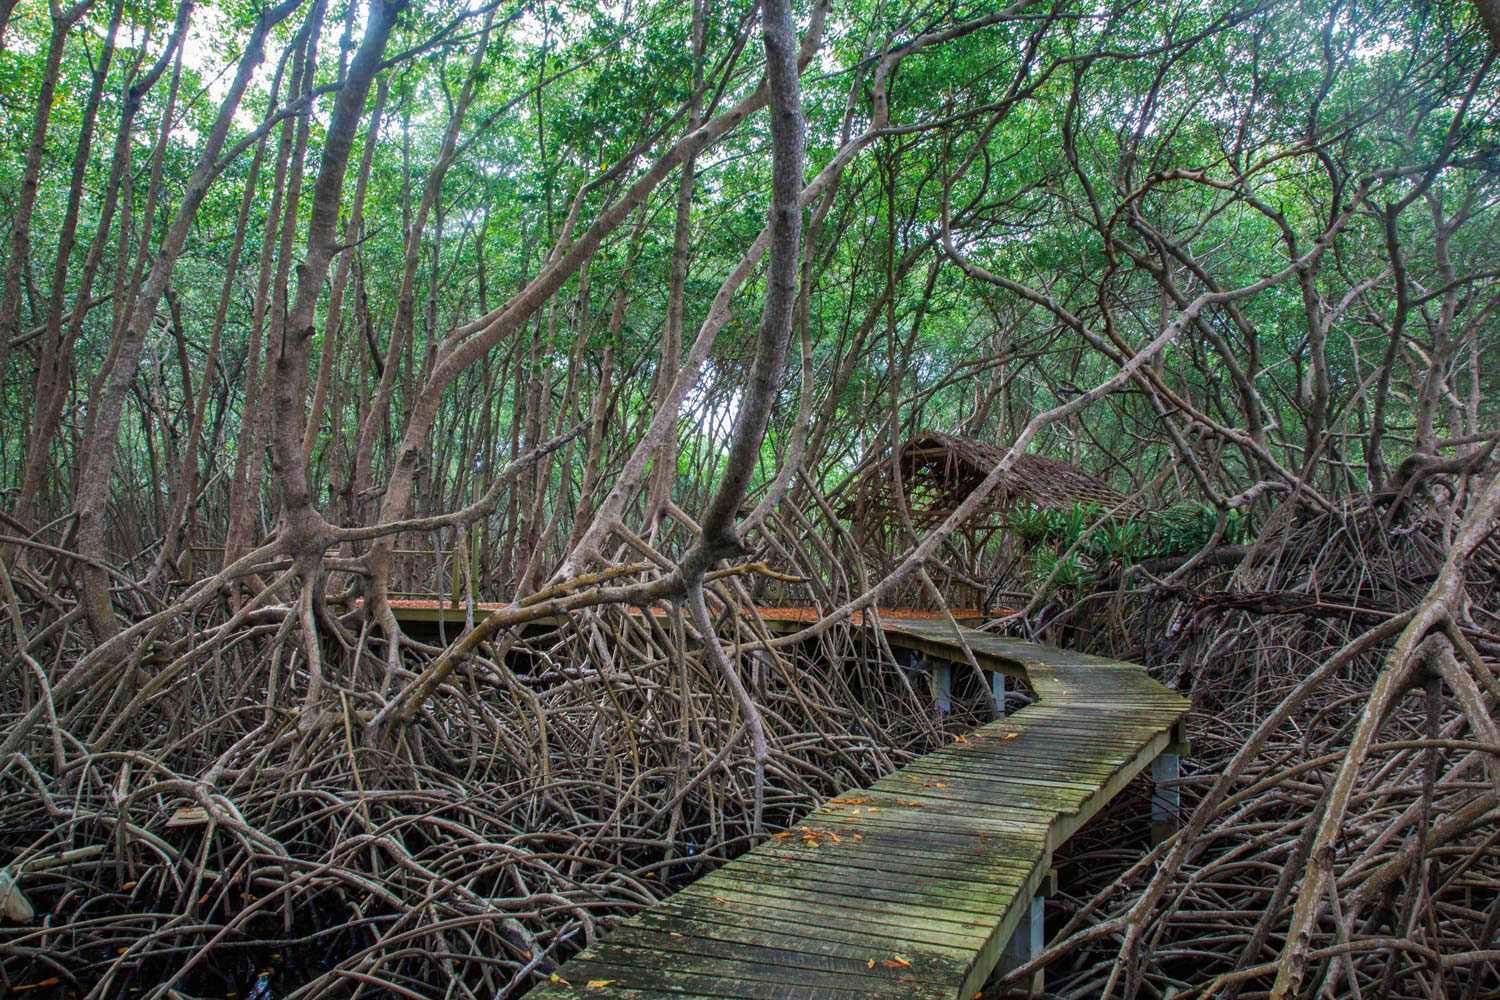 The mangrove forest at Tobago's Bon Accord Lagoon is a crucial wetland habitat. Photo by Ariann Thompson